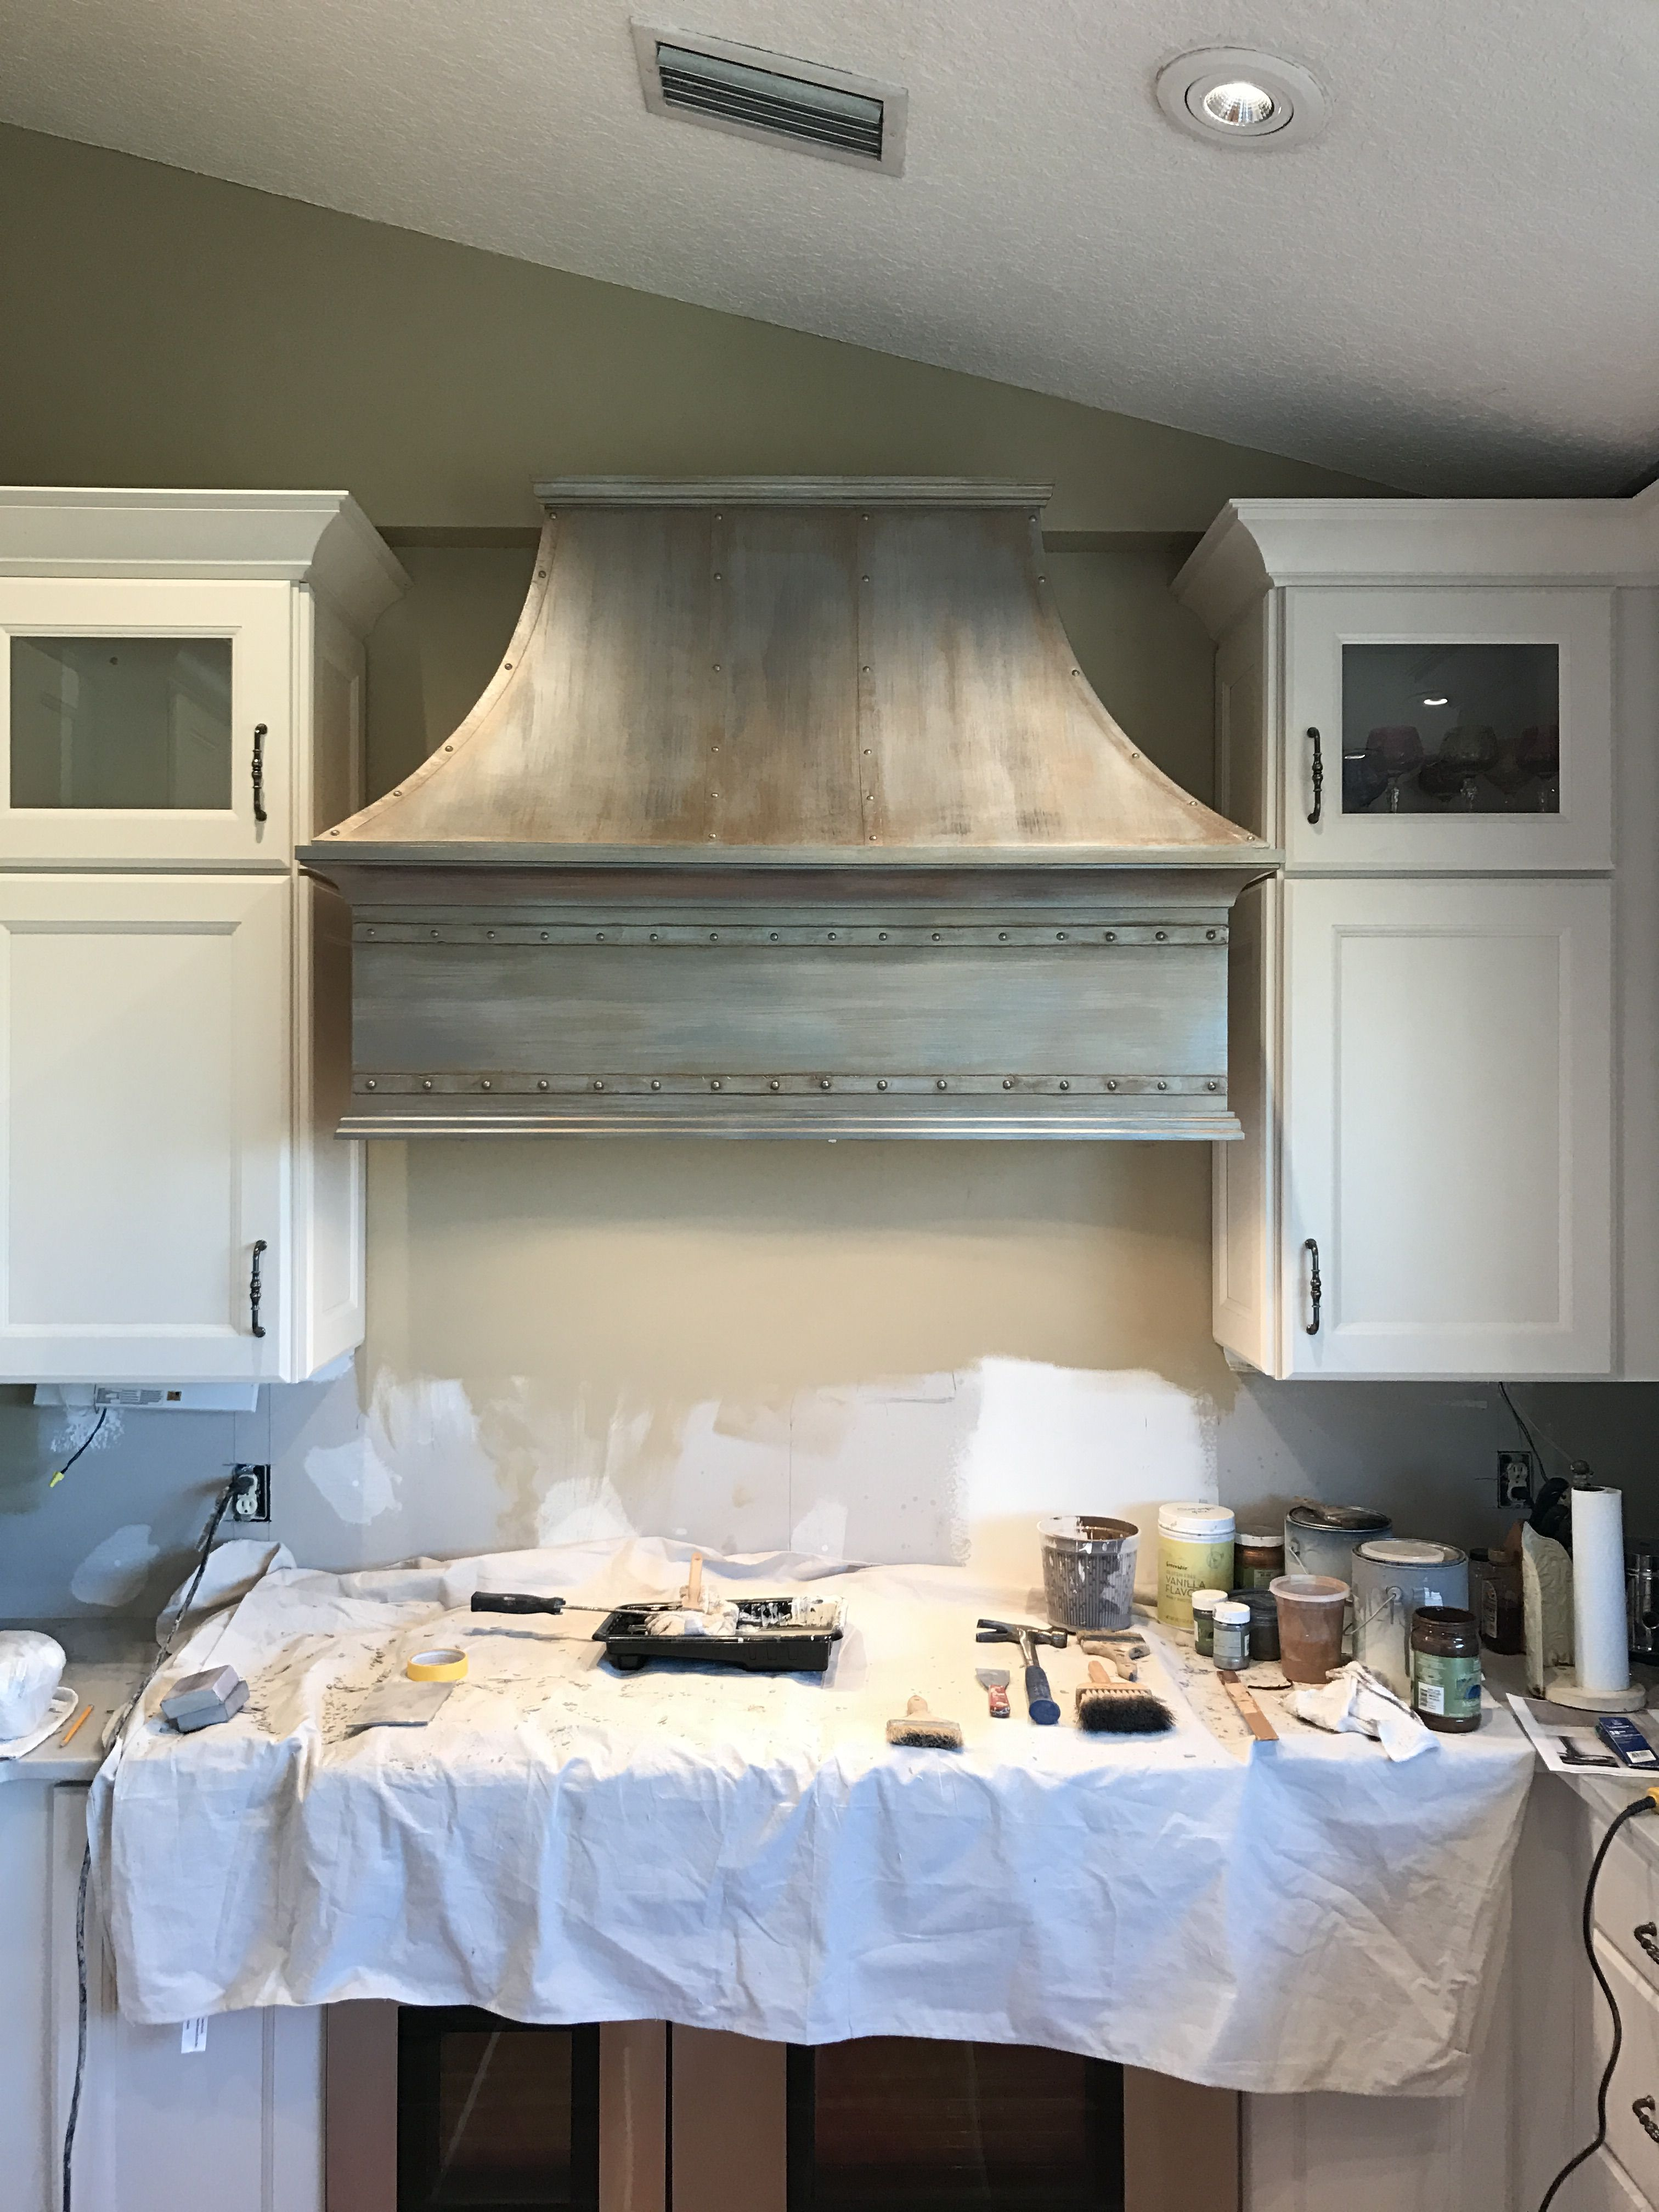 Pewter Copper Plastered Range Hood Here Faux Finish On